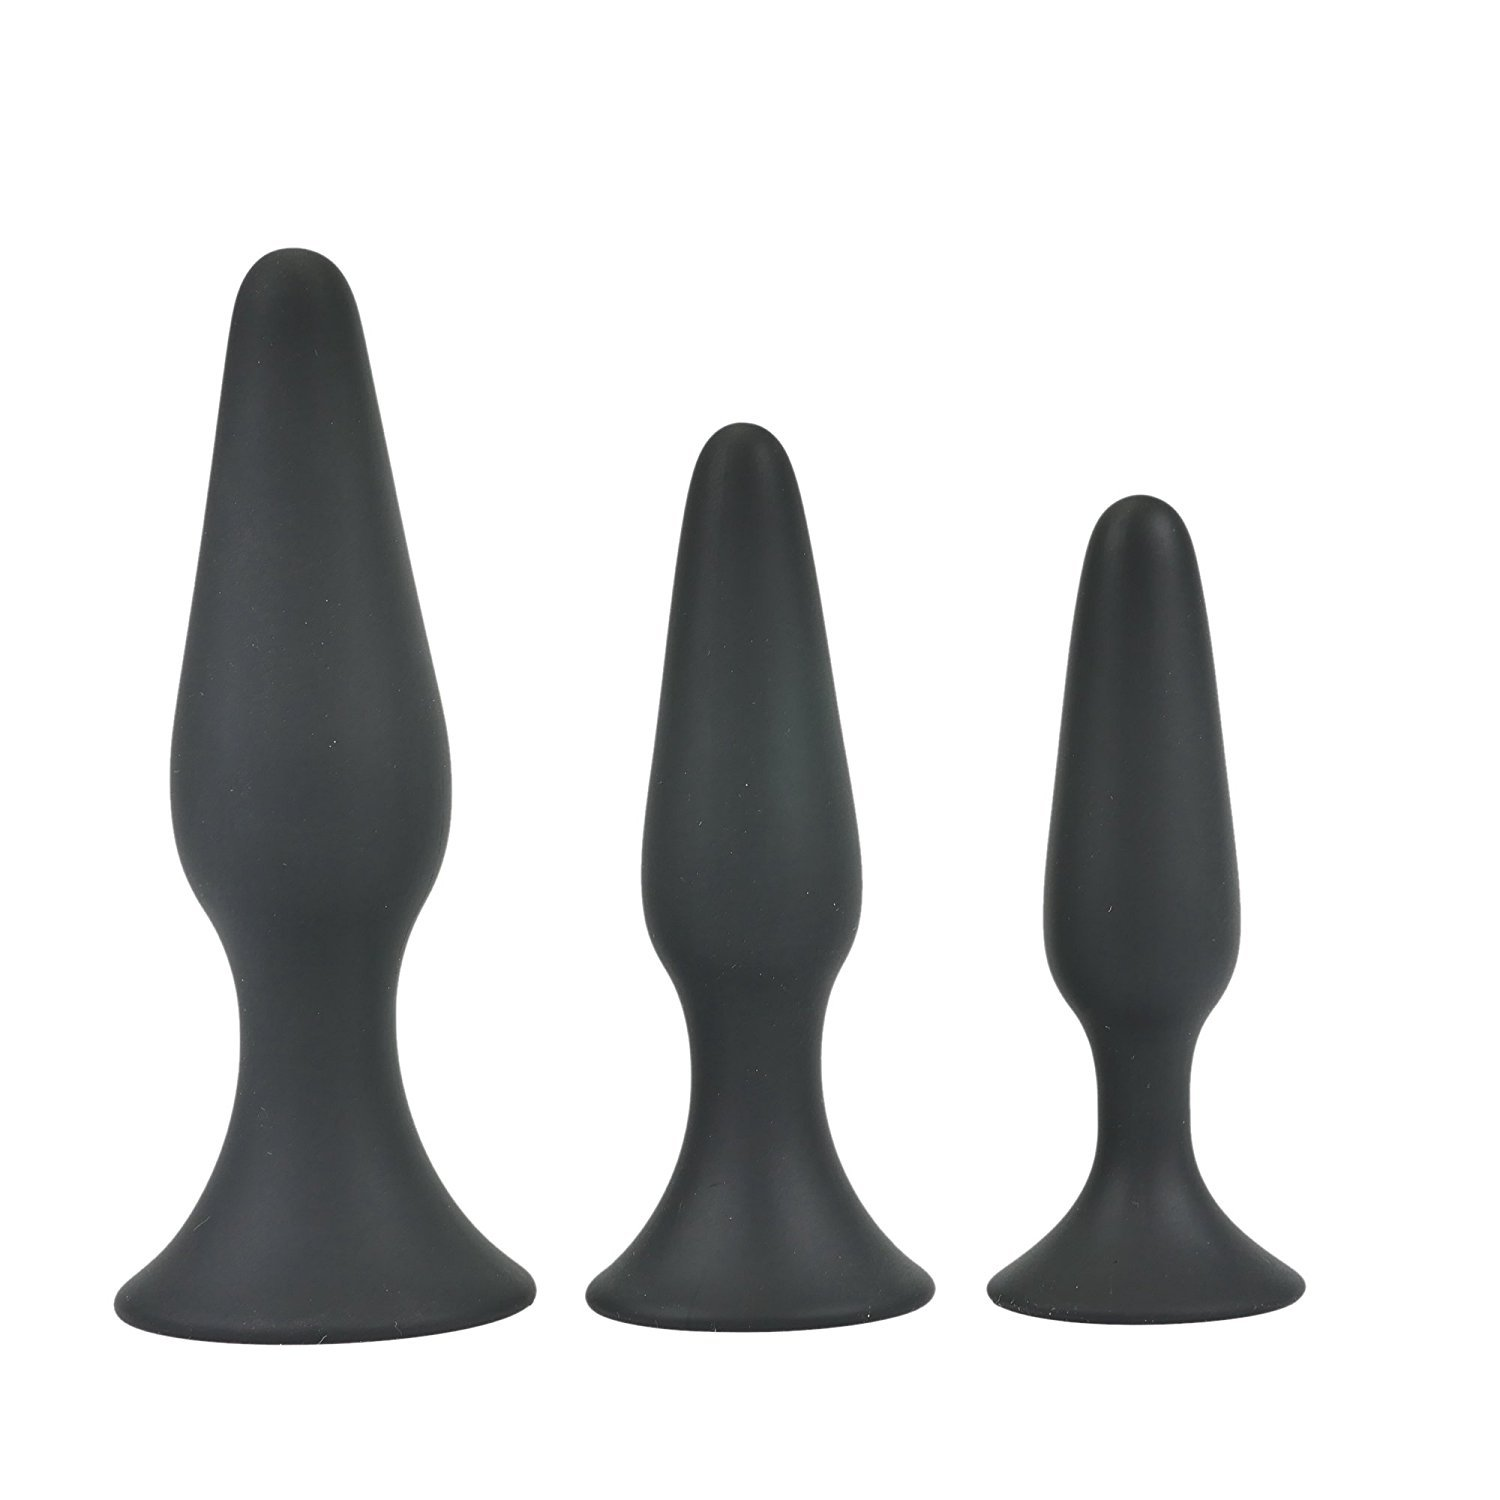 Shootmy 3 Pcs Anal Plugs Starter Kit Butt Plugs Anal Trainer Toys for Men & Women-Waterproof, Medcial Grade Silicone (Black)